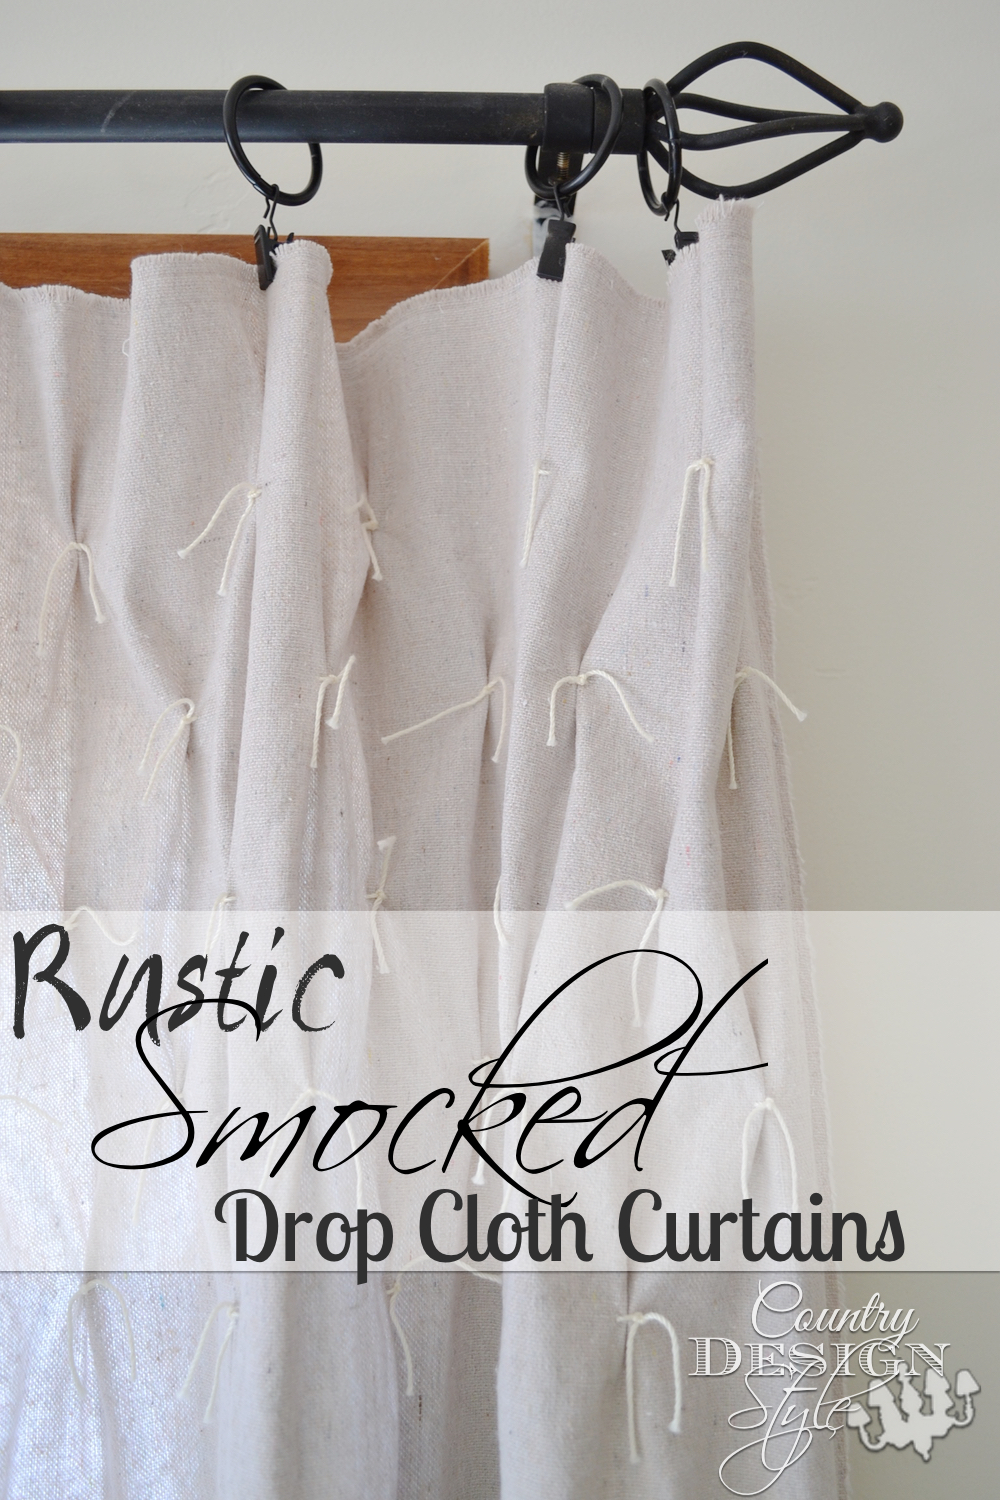 Need inexpensive curtains? Try drop cloth for curtains & add smocking to take the drop cloth look out!!! :) Country Design Style